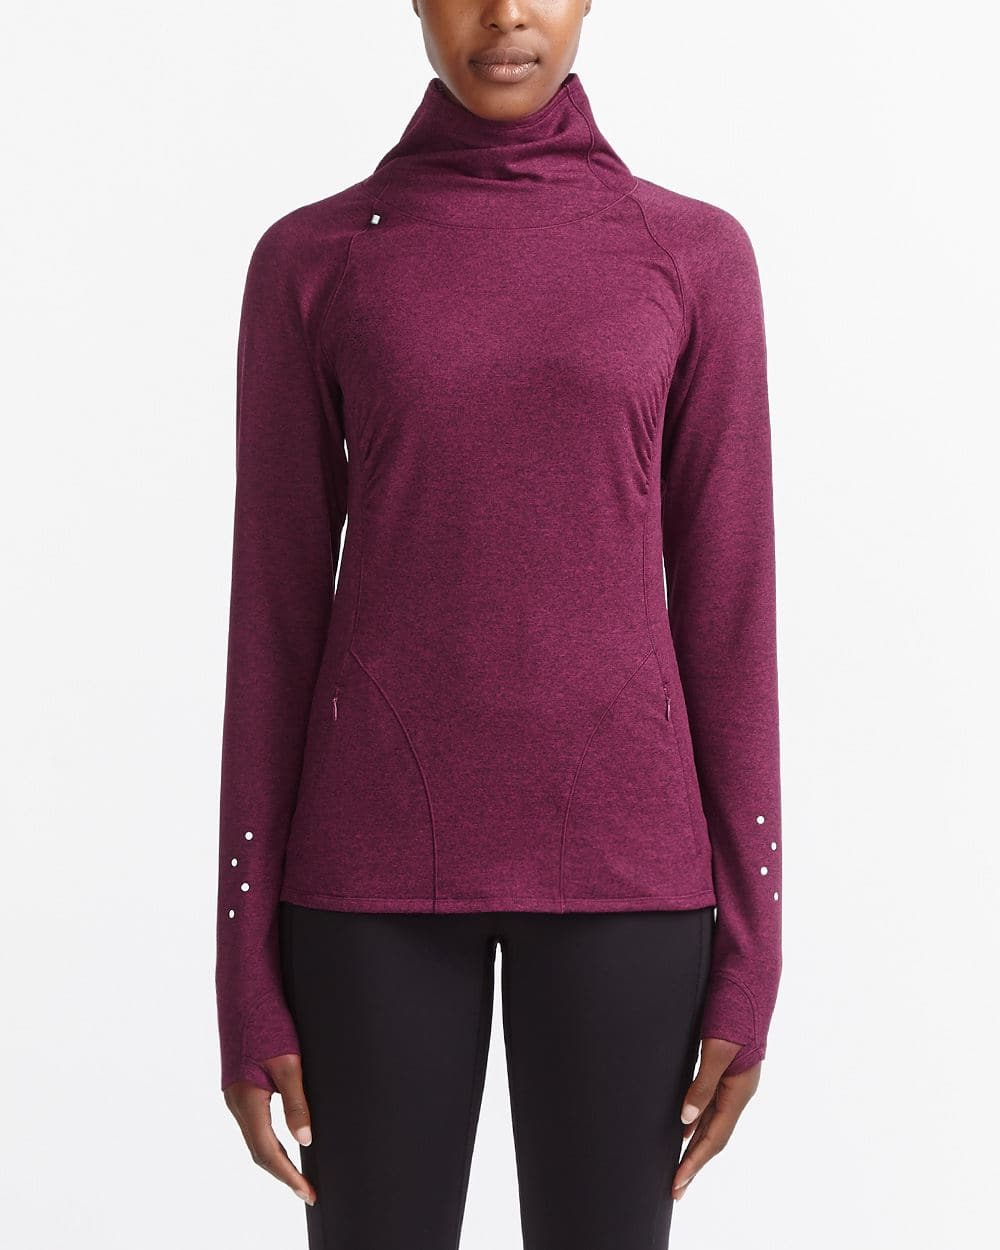 Hyba Thermal Mock Neck Top